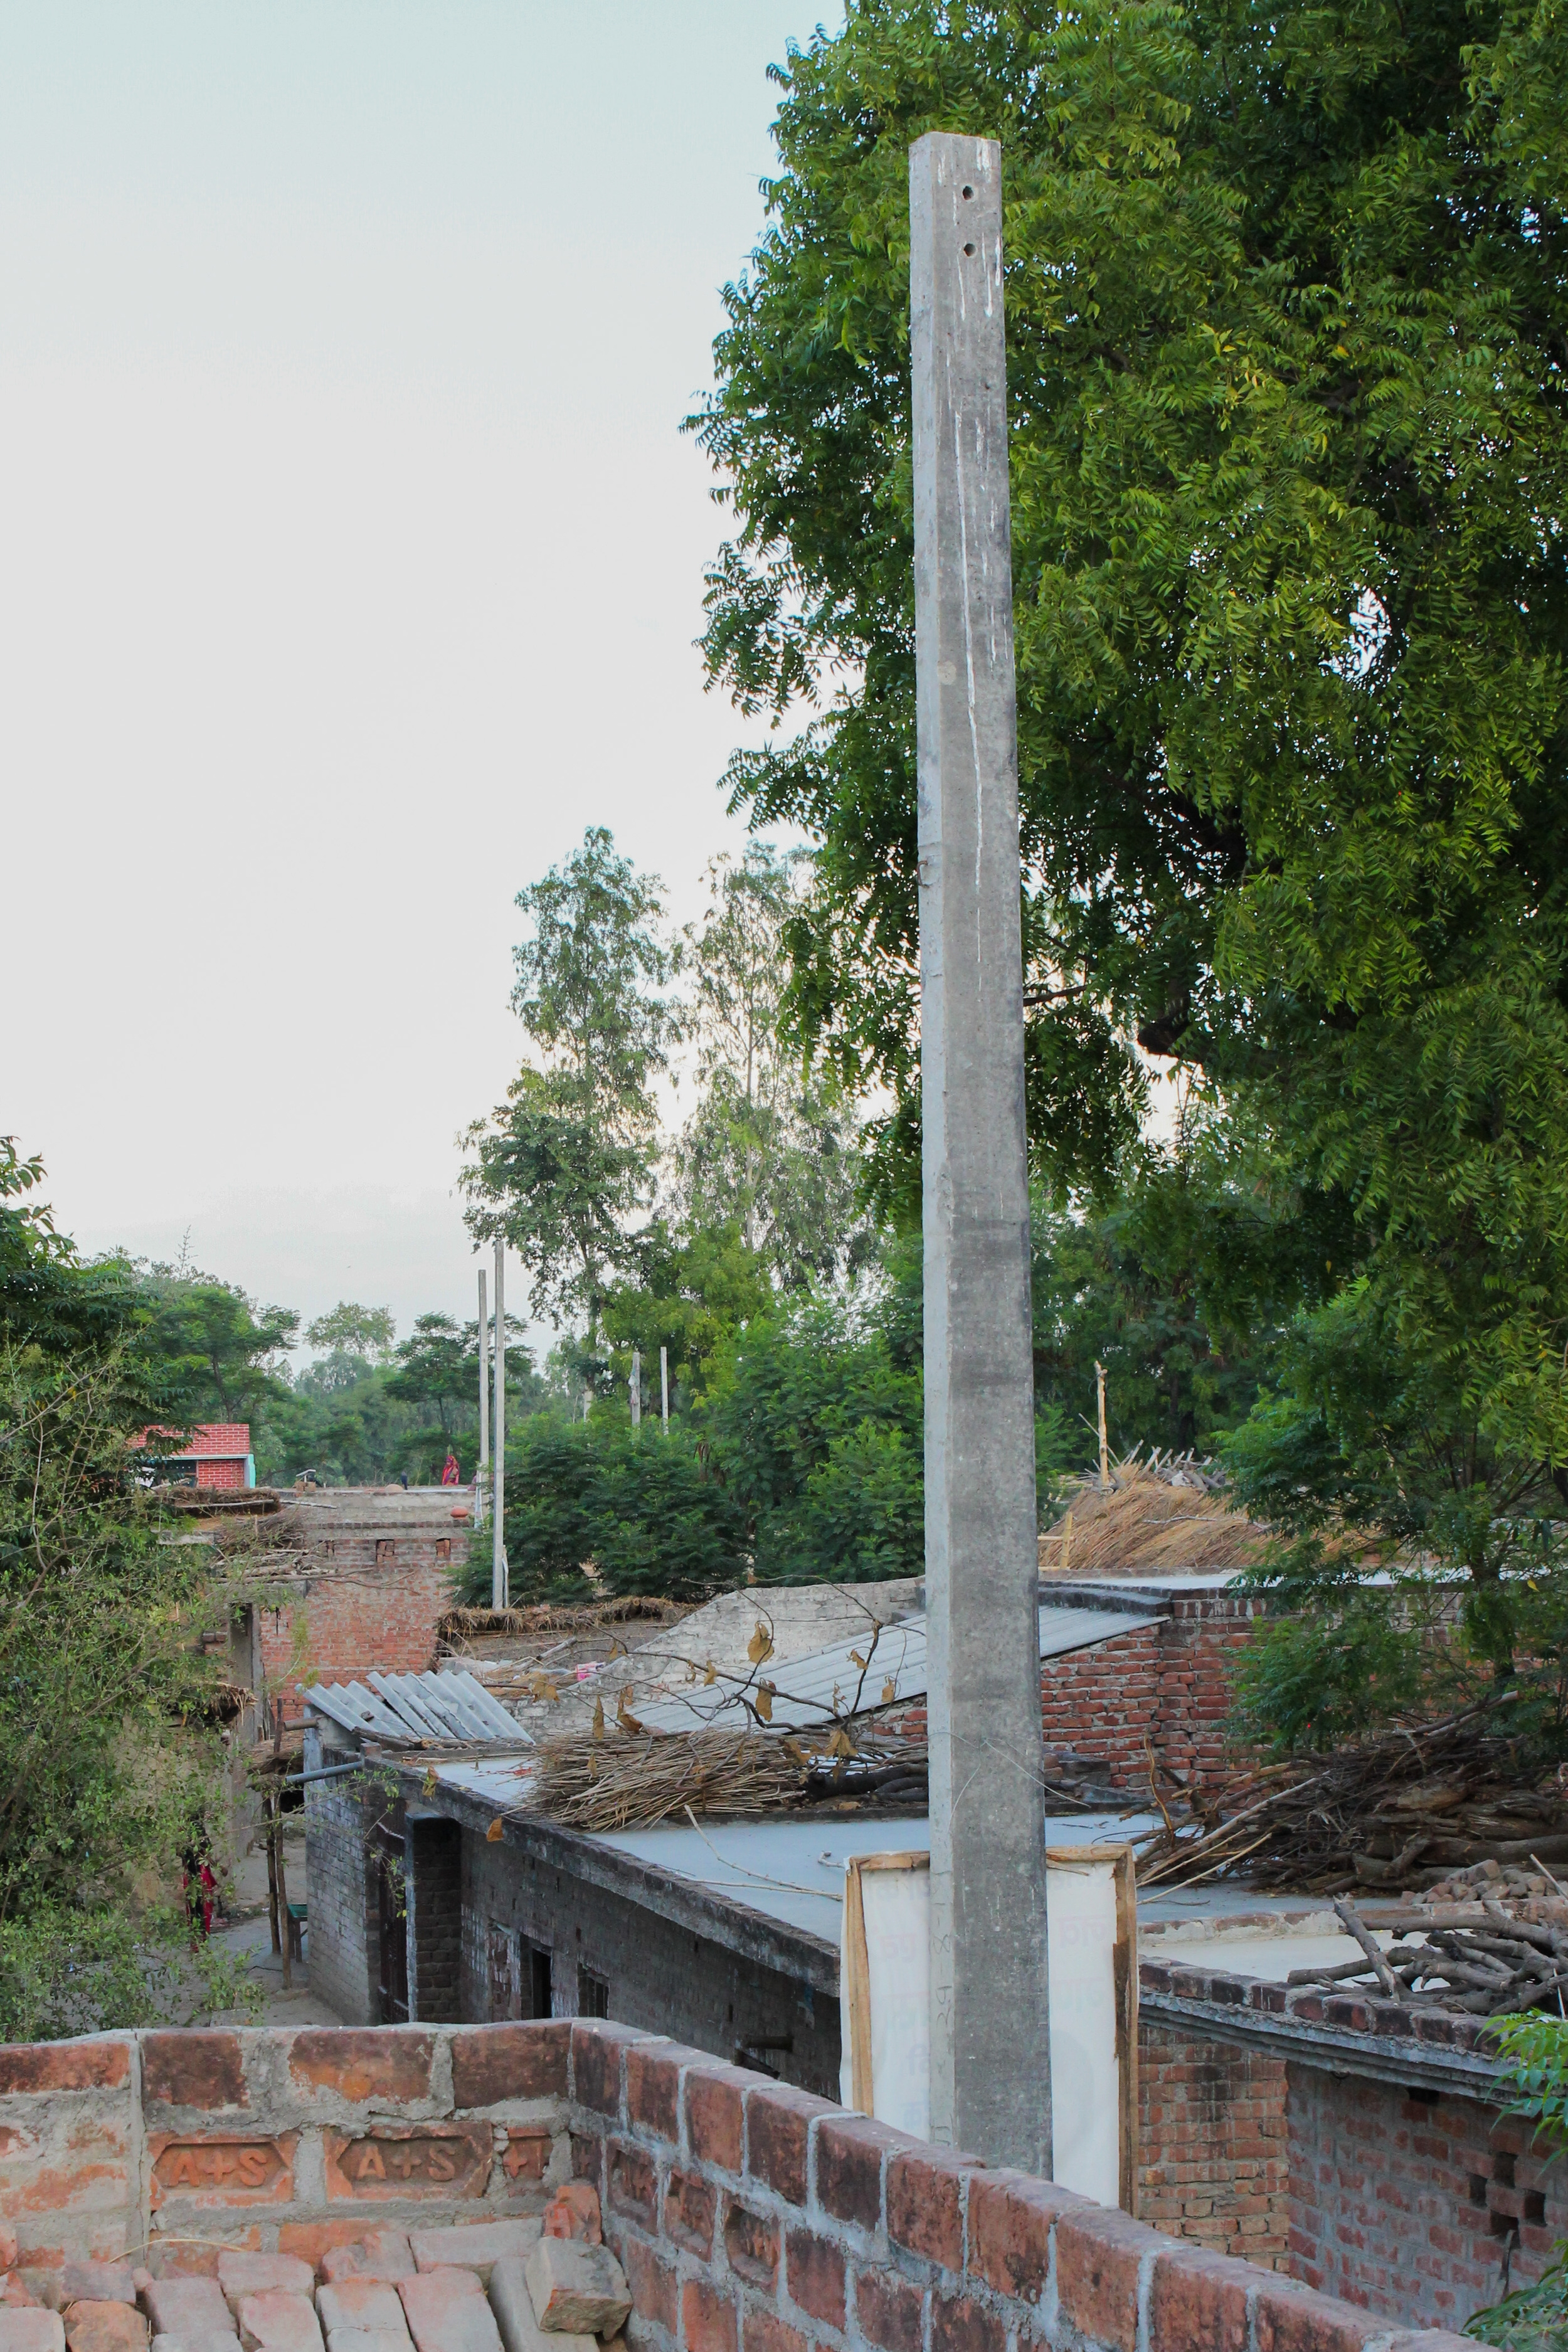 These concrete poles were set by the government to givelight service to the village. Theyhave no wires in them at all,and have been empty for over half a year, when theywereinstalled. This means that the faulty solar panels are the only source of electricity for thisvillage.